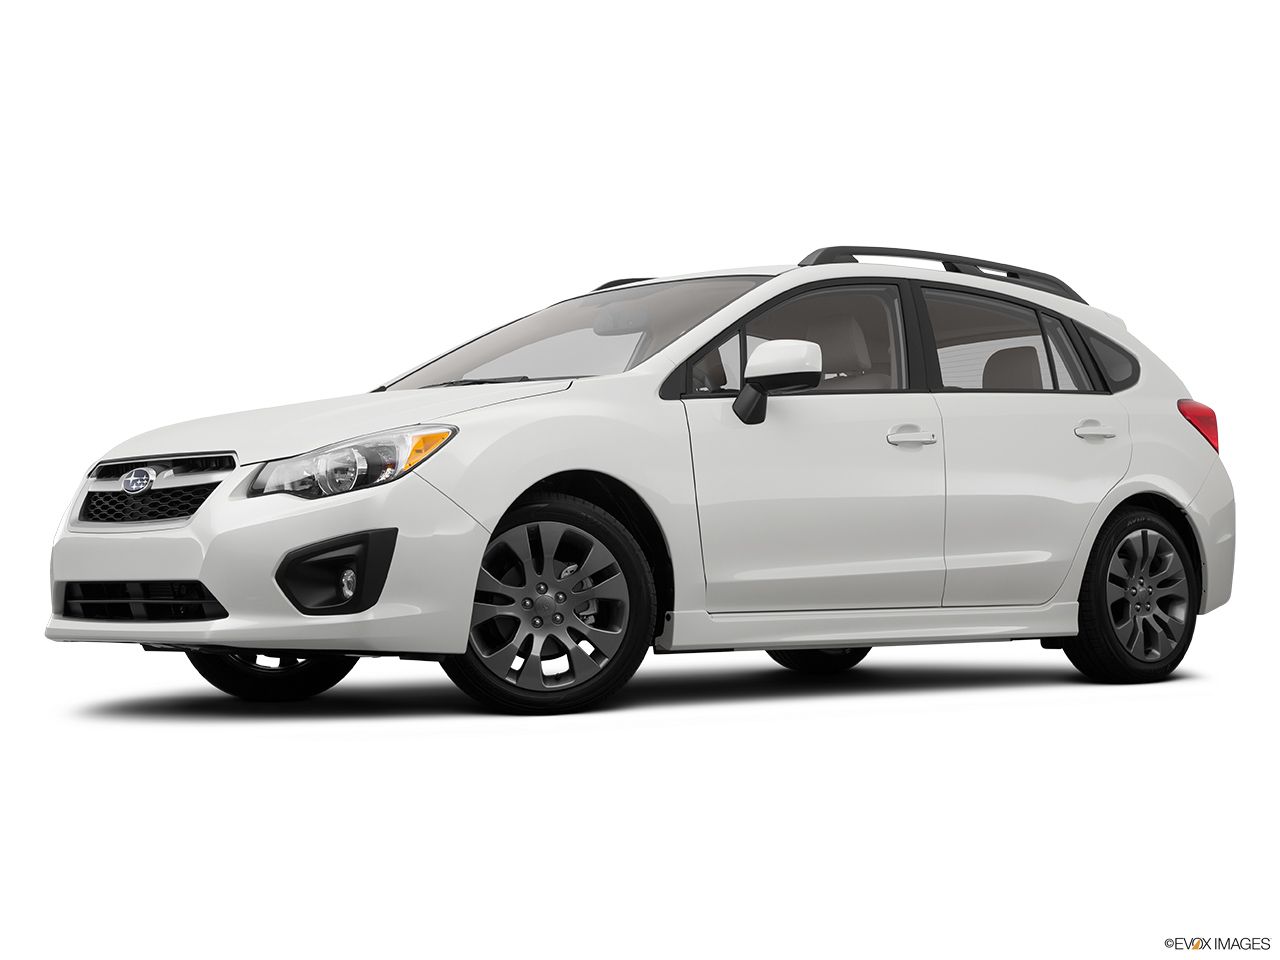 2014 subaru impreza wagon 5dr manual sport premium. Black Bedroom Furniture Sets. Home Design Ideas